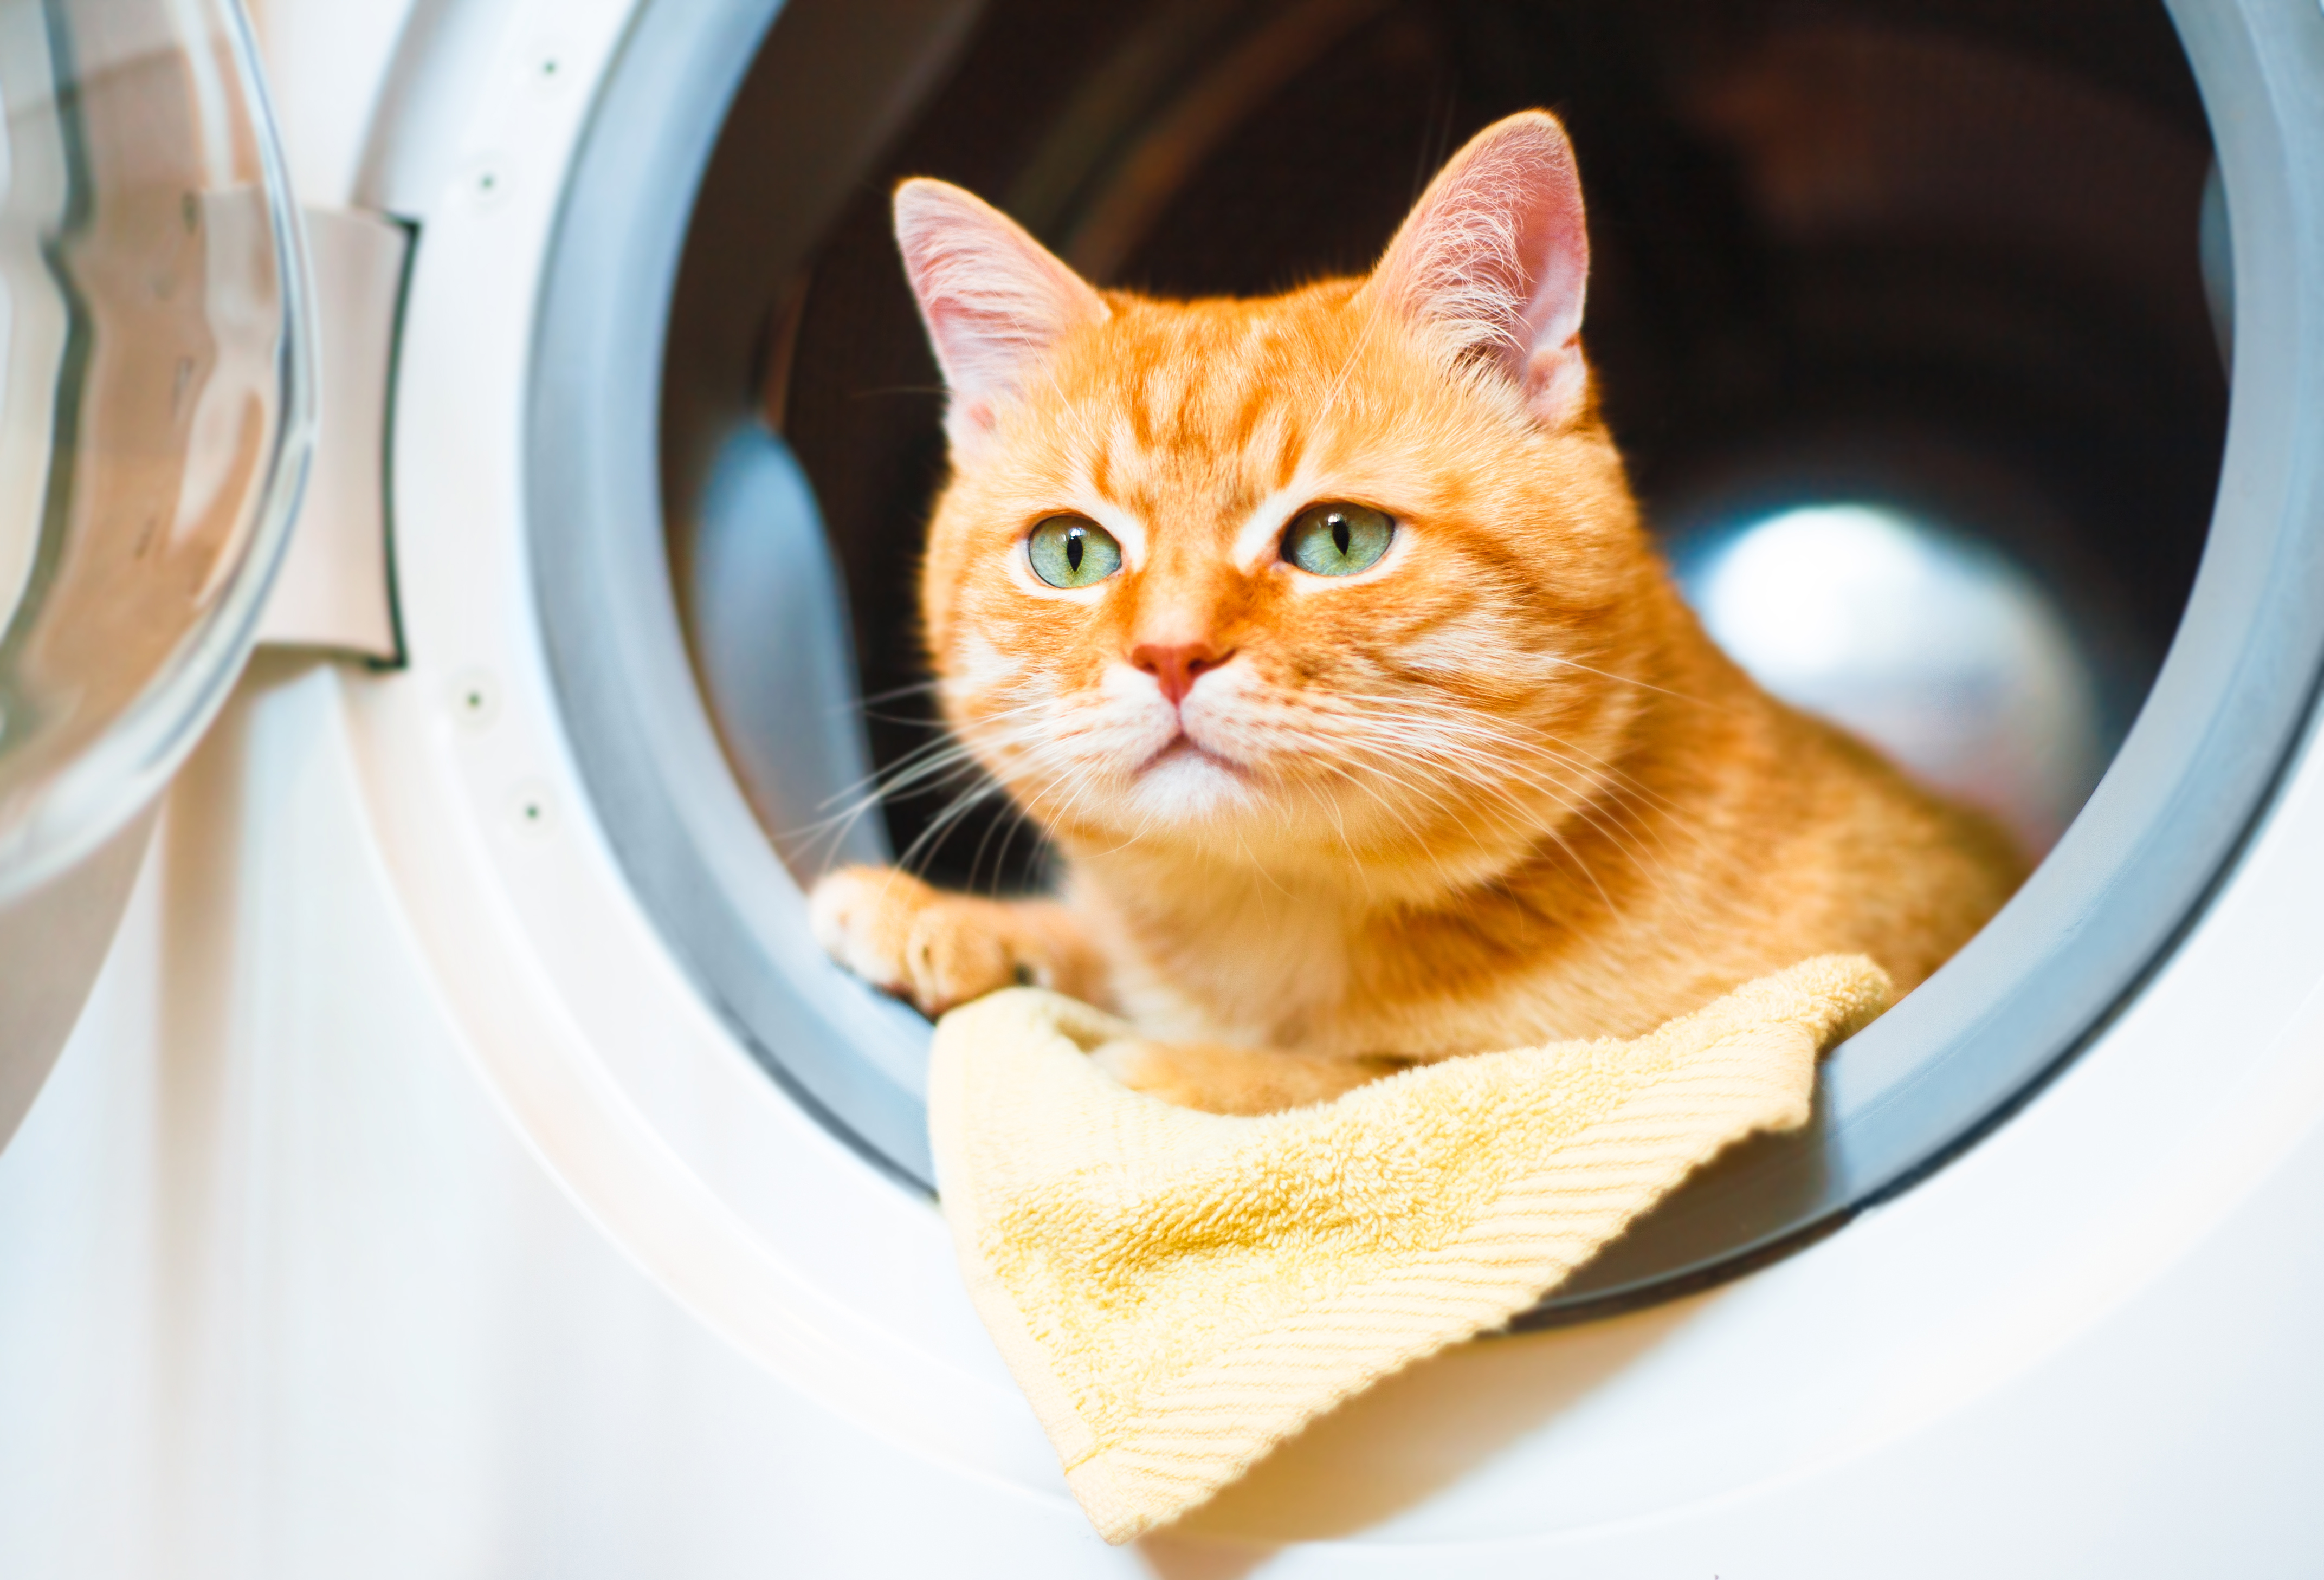 Getting pet hair out of bedding is annoying — but it doesn't have to be. A quick tumble in the laundry machine plus one secret ingredient will prevent pet fur from sticking everywhere.